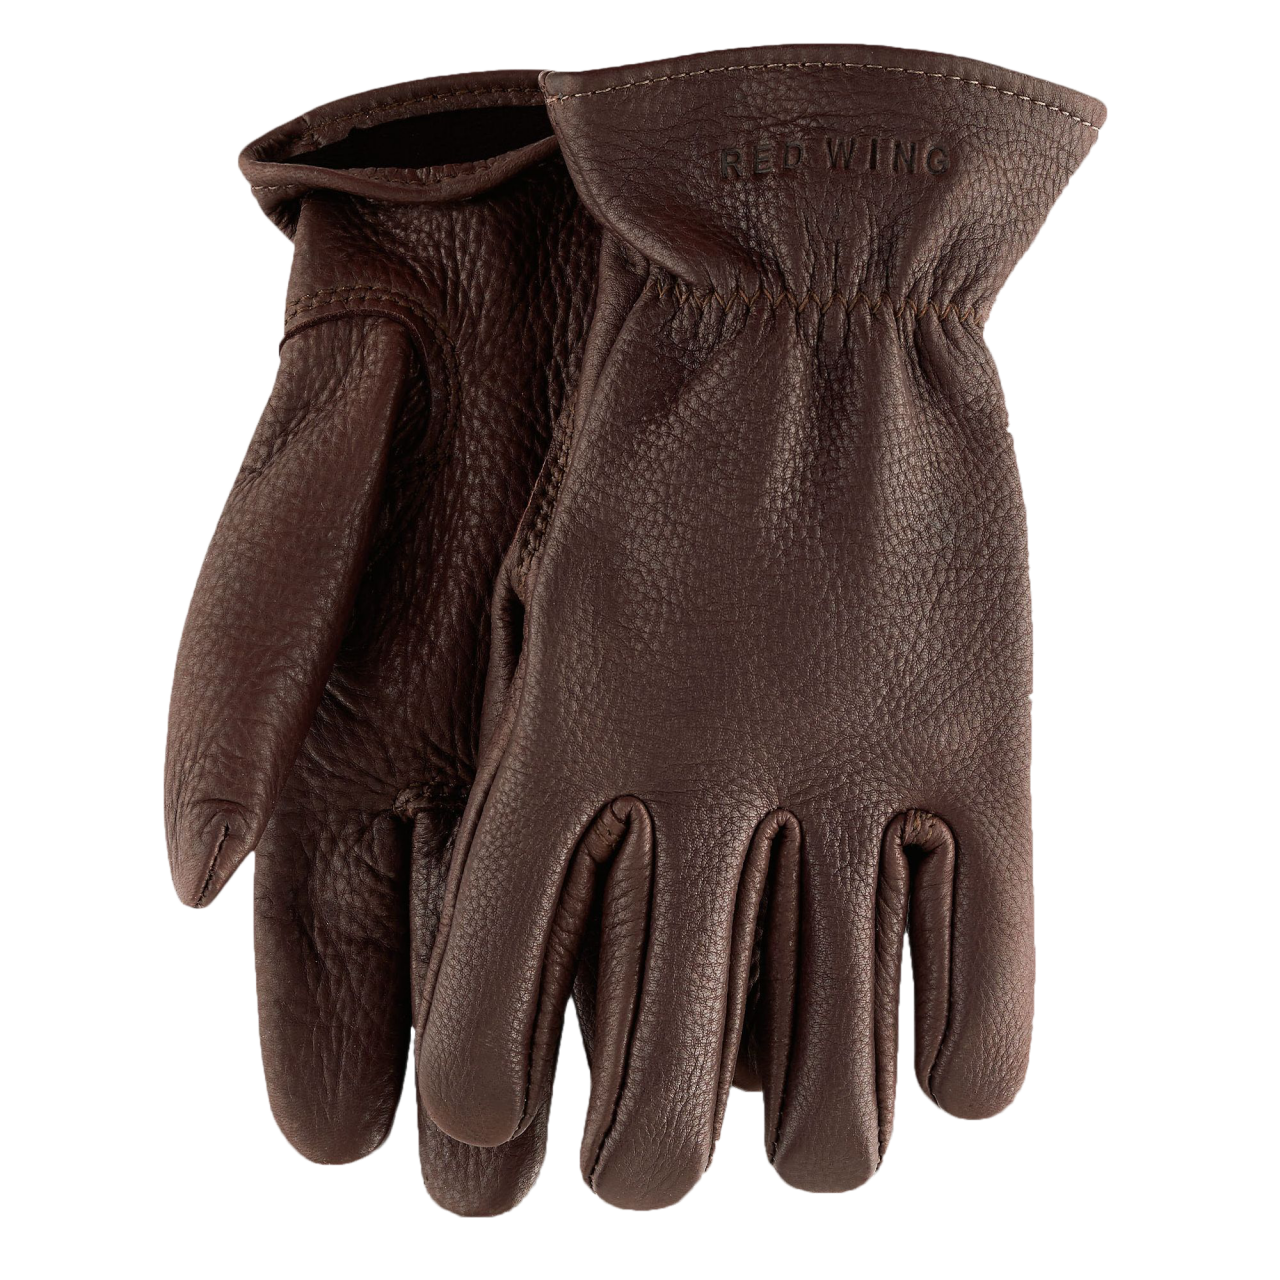 Red Wing 95235 Glove - Buckskin Unlined